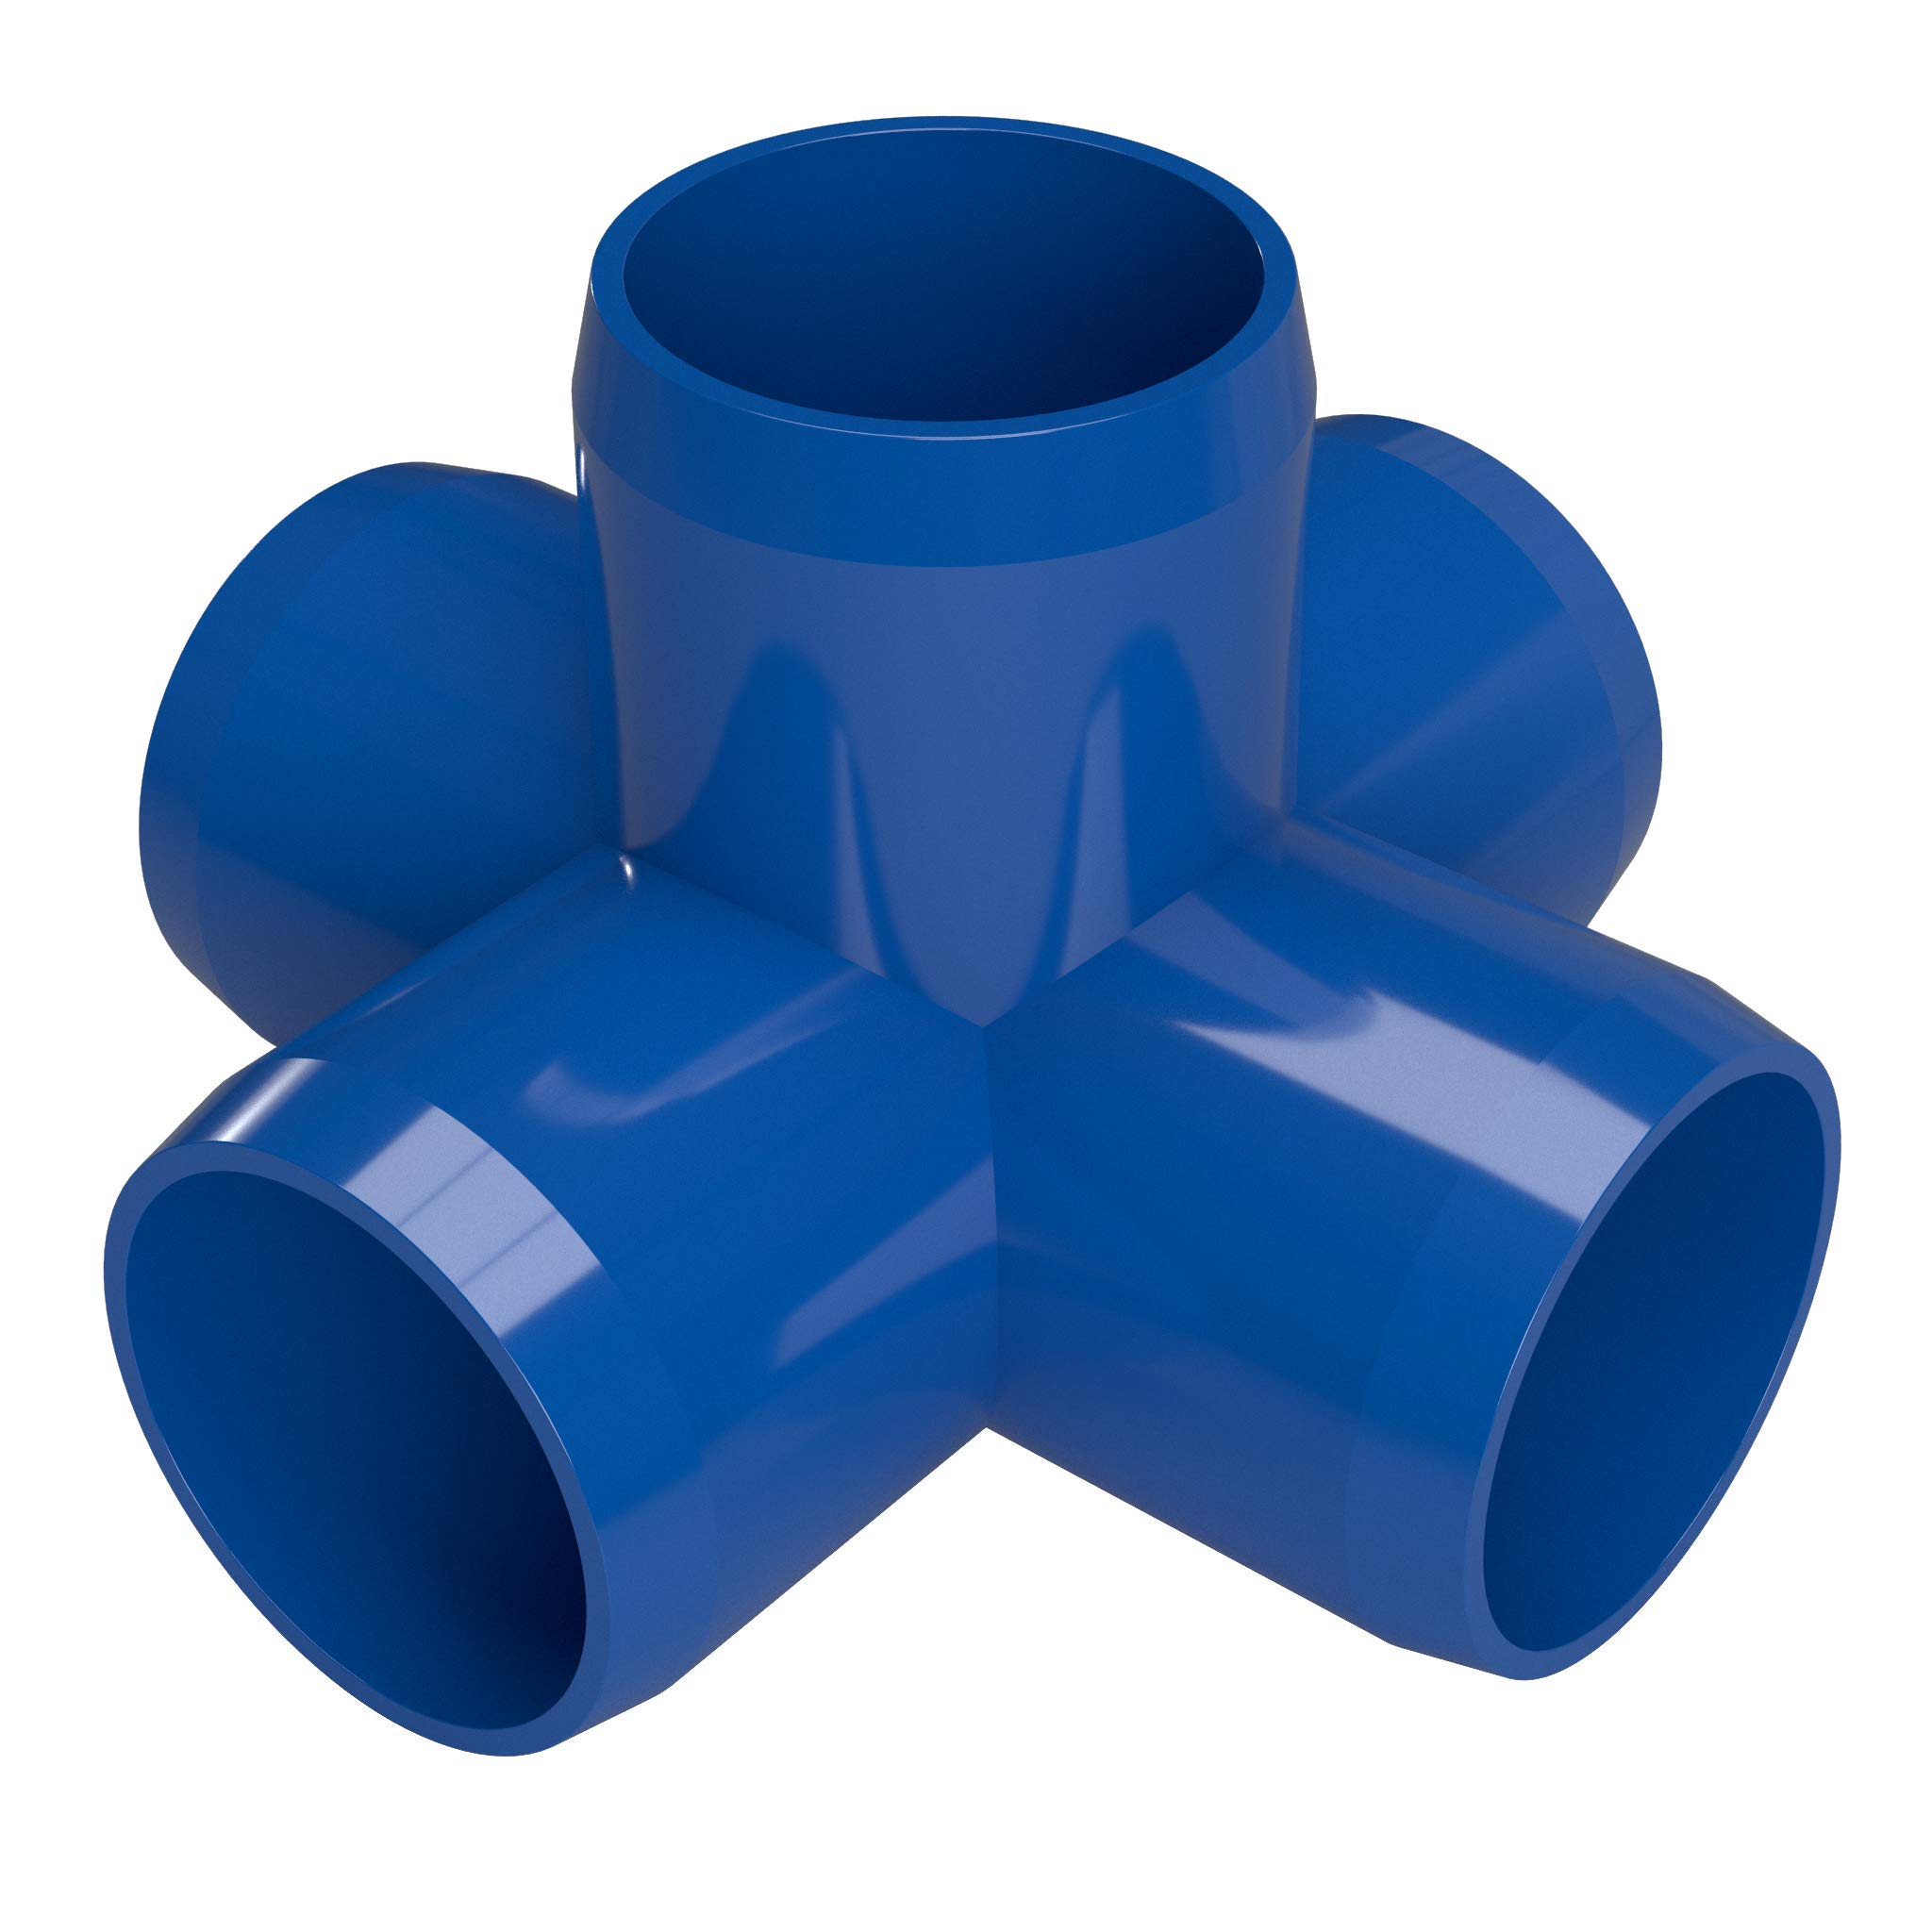 FORMUFIT F1145WC-BL-4 5-Way Cross PVC Fitting, Furniture Grade, 1-1/4'' Size, Blue (Pack of 4)